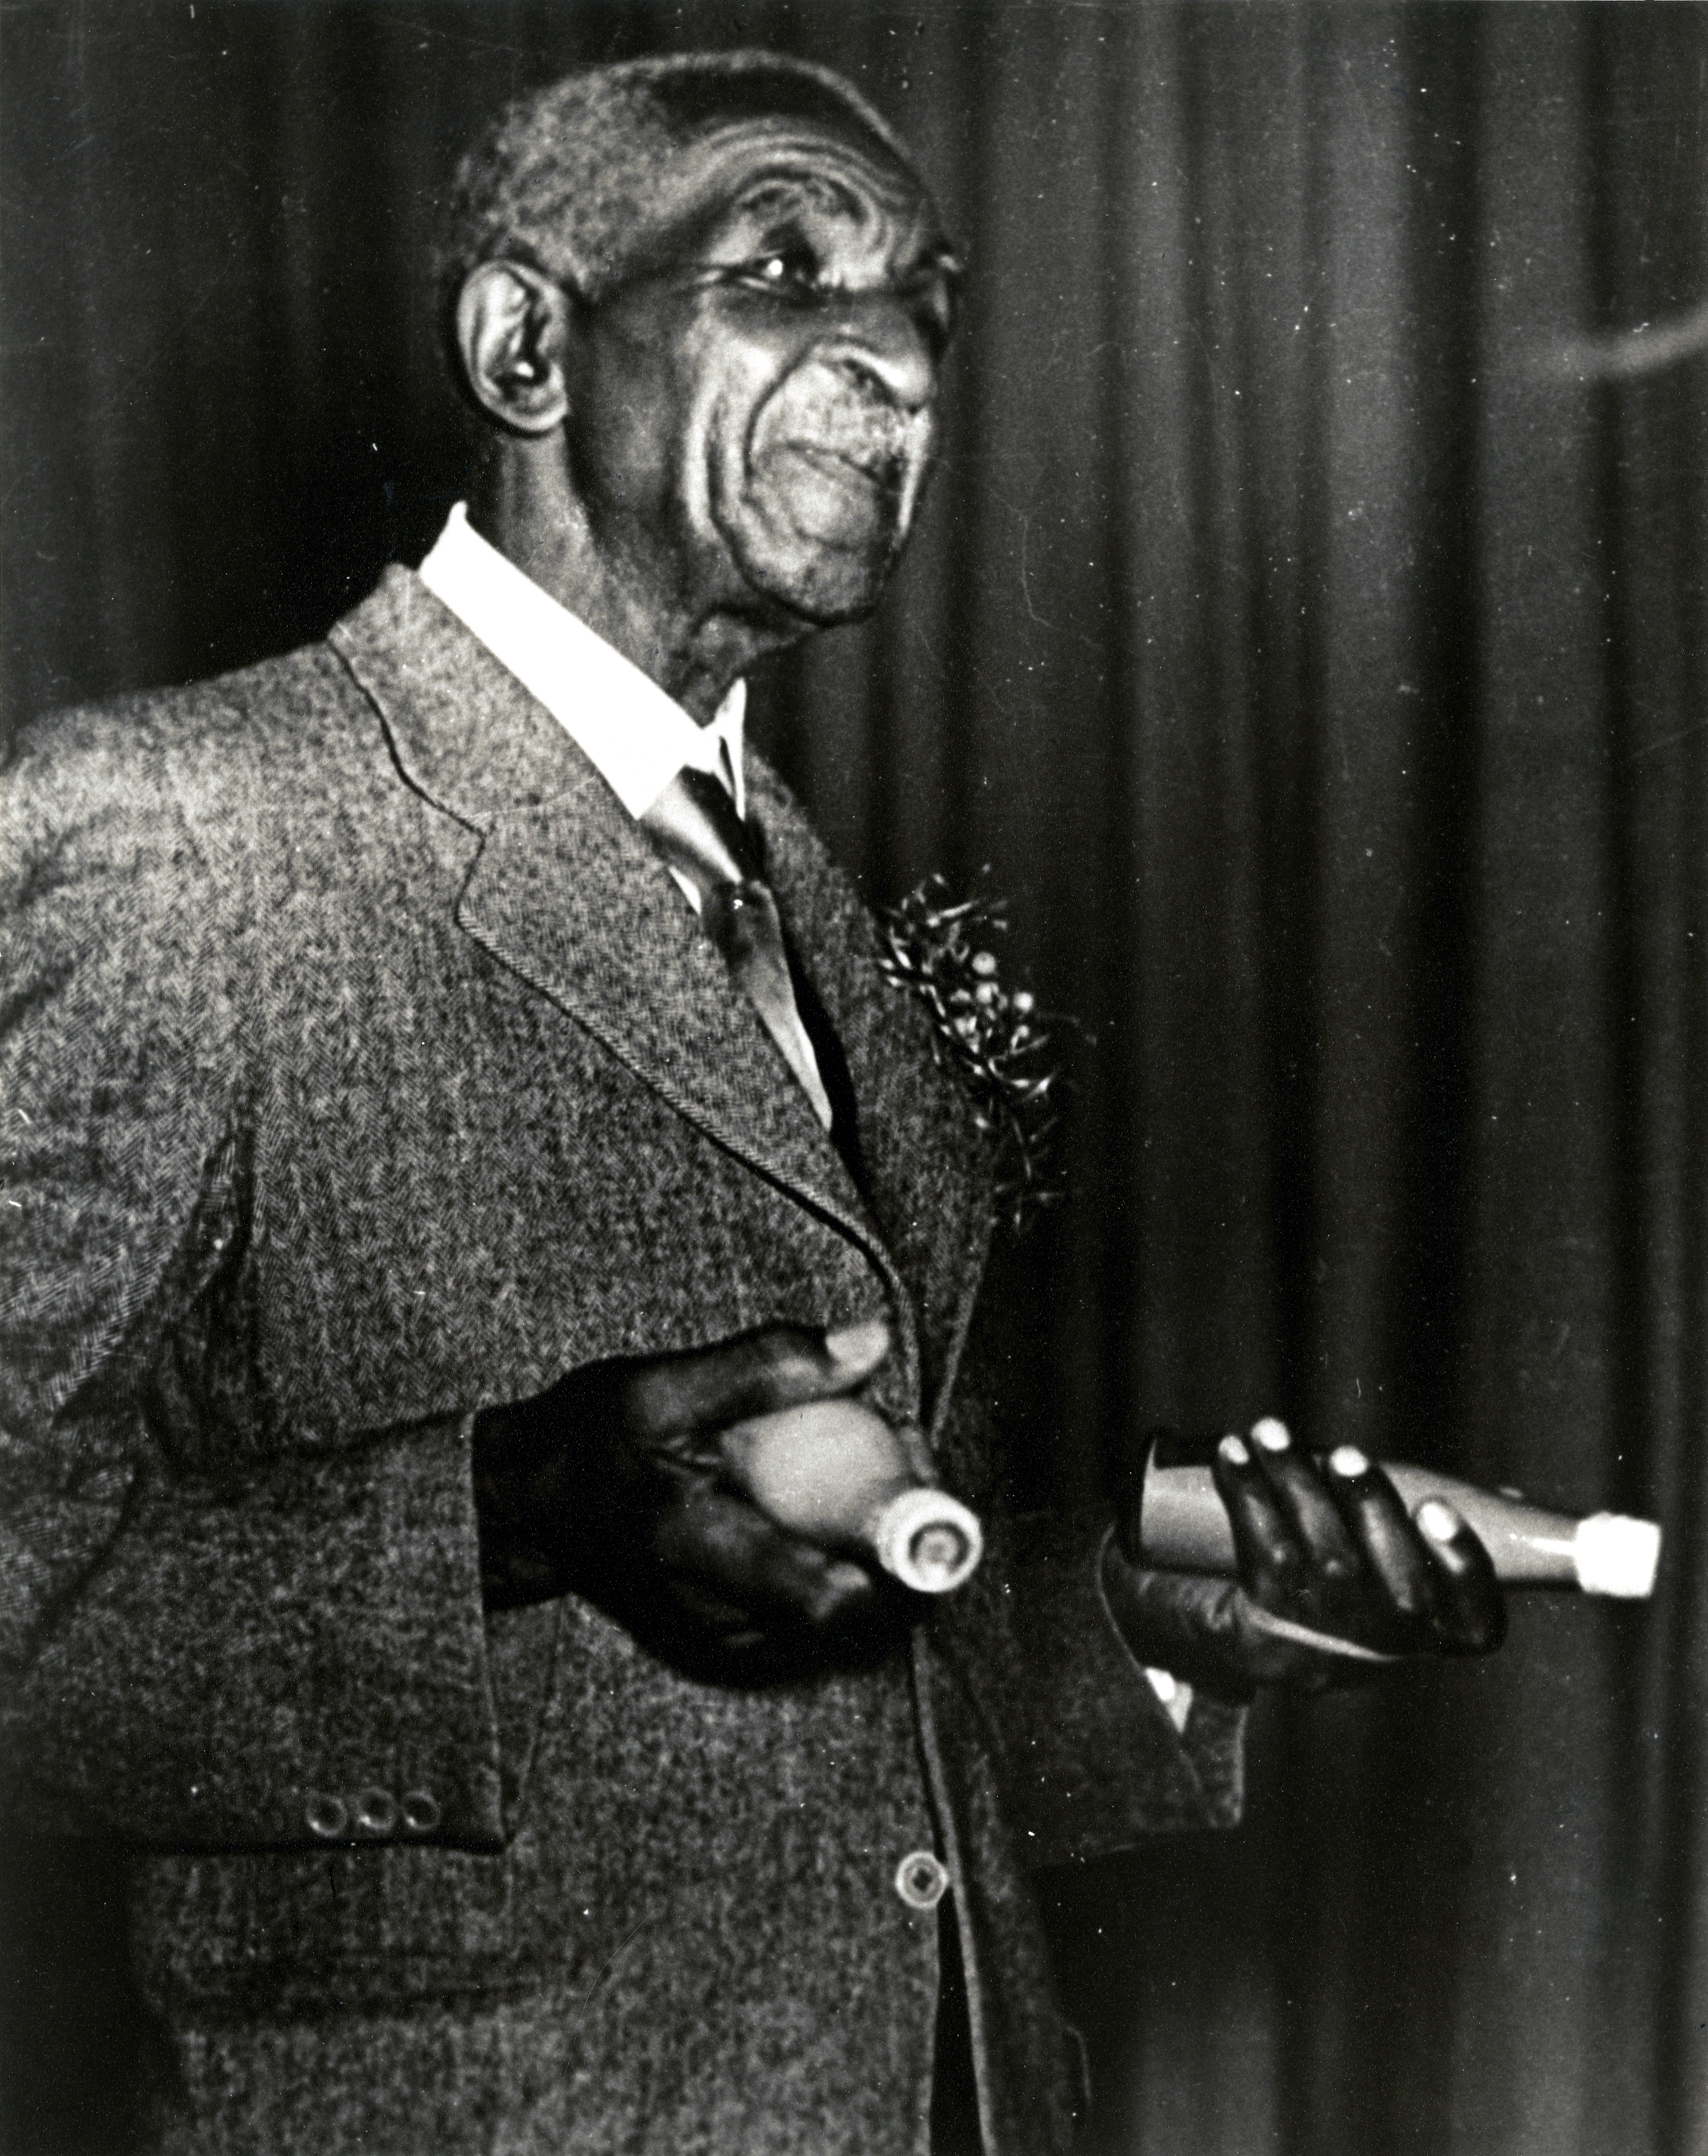 Photo Of George Washington Carver With A Bottle In Each